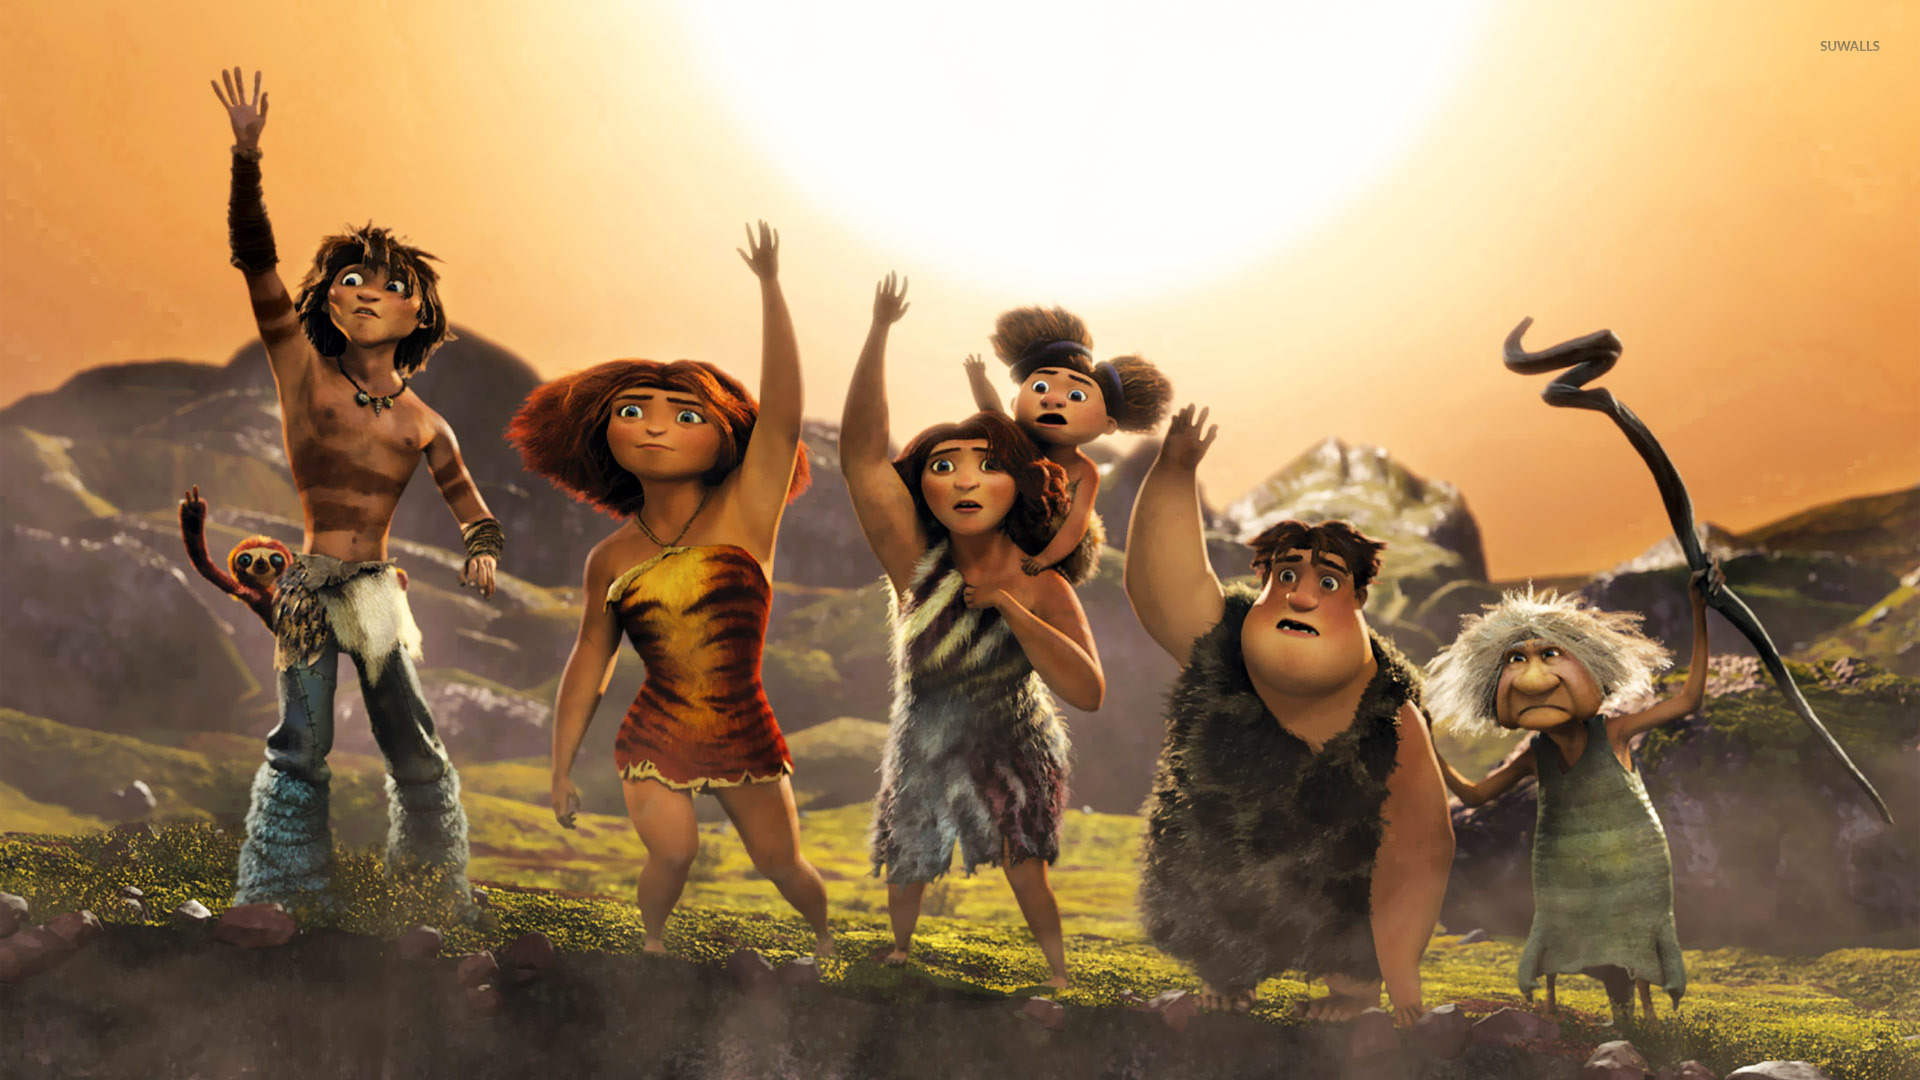 The croods 2 wallpaper cartoon wallpapers 19178 the croods 2 wallpaper voltagebd Gallery